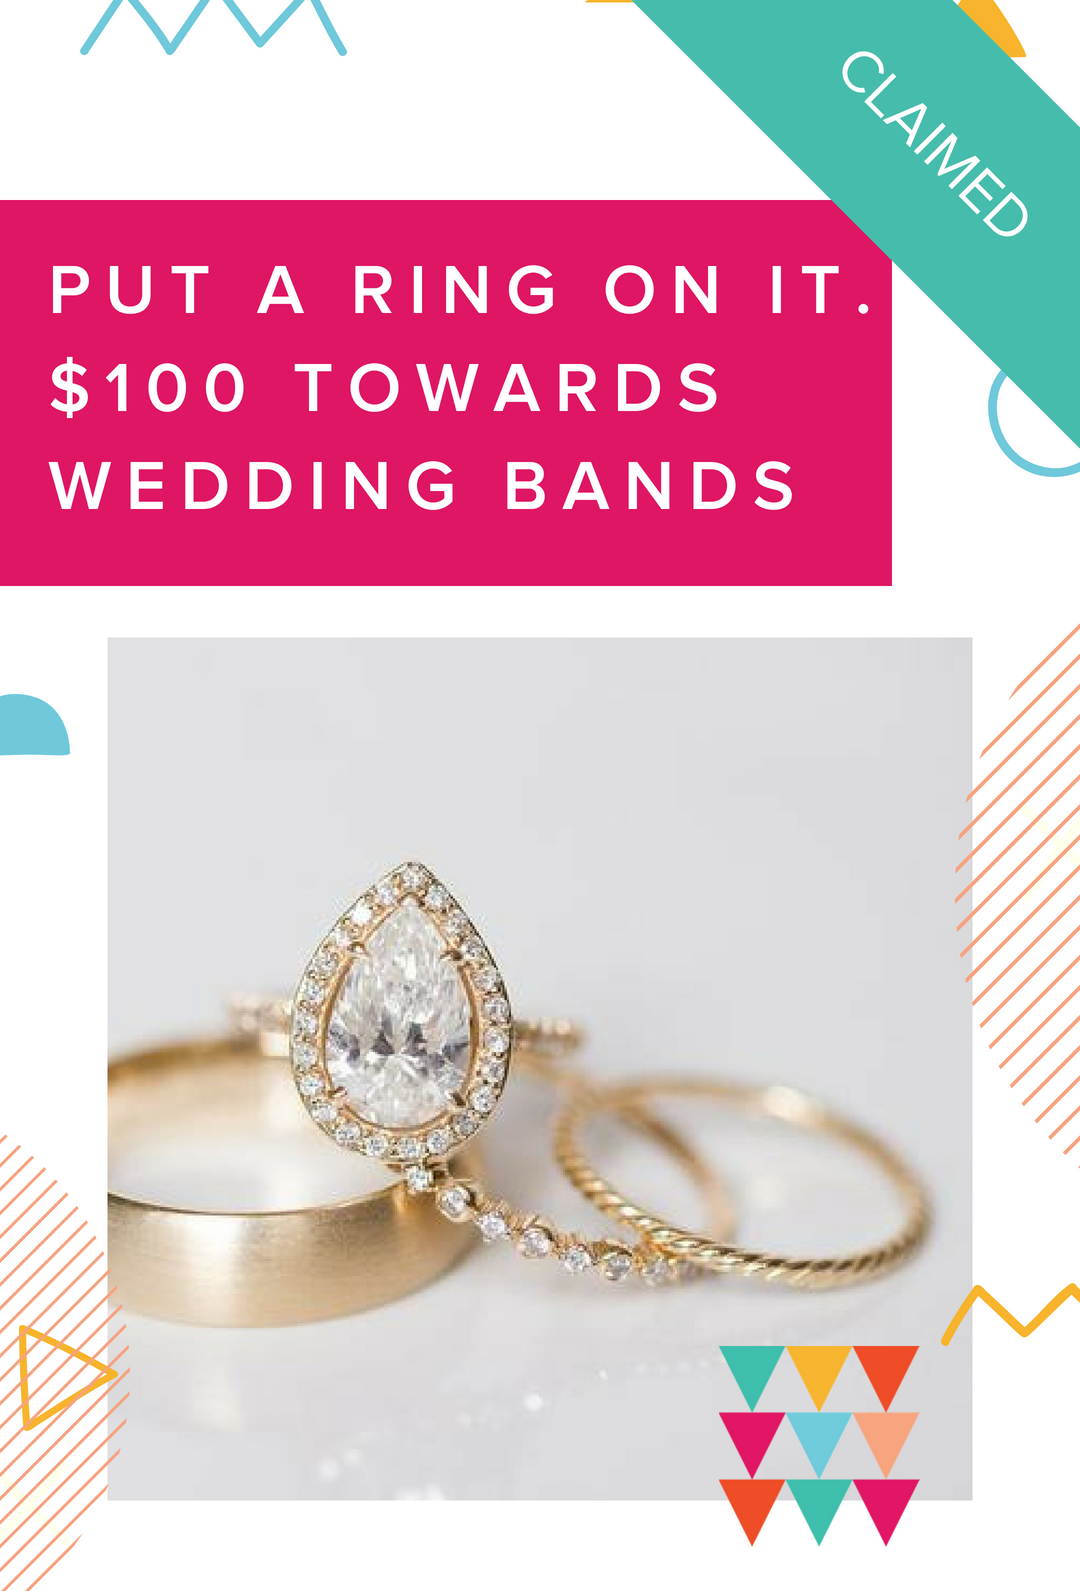 Spring into Wedding Planning Prize Claimed L Priori Jewelry